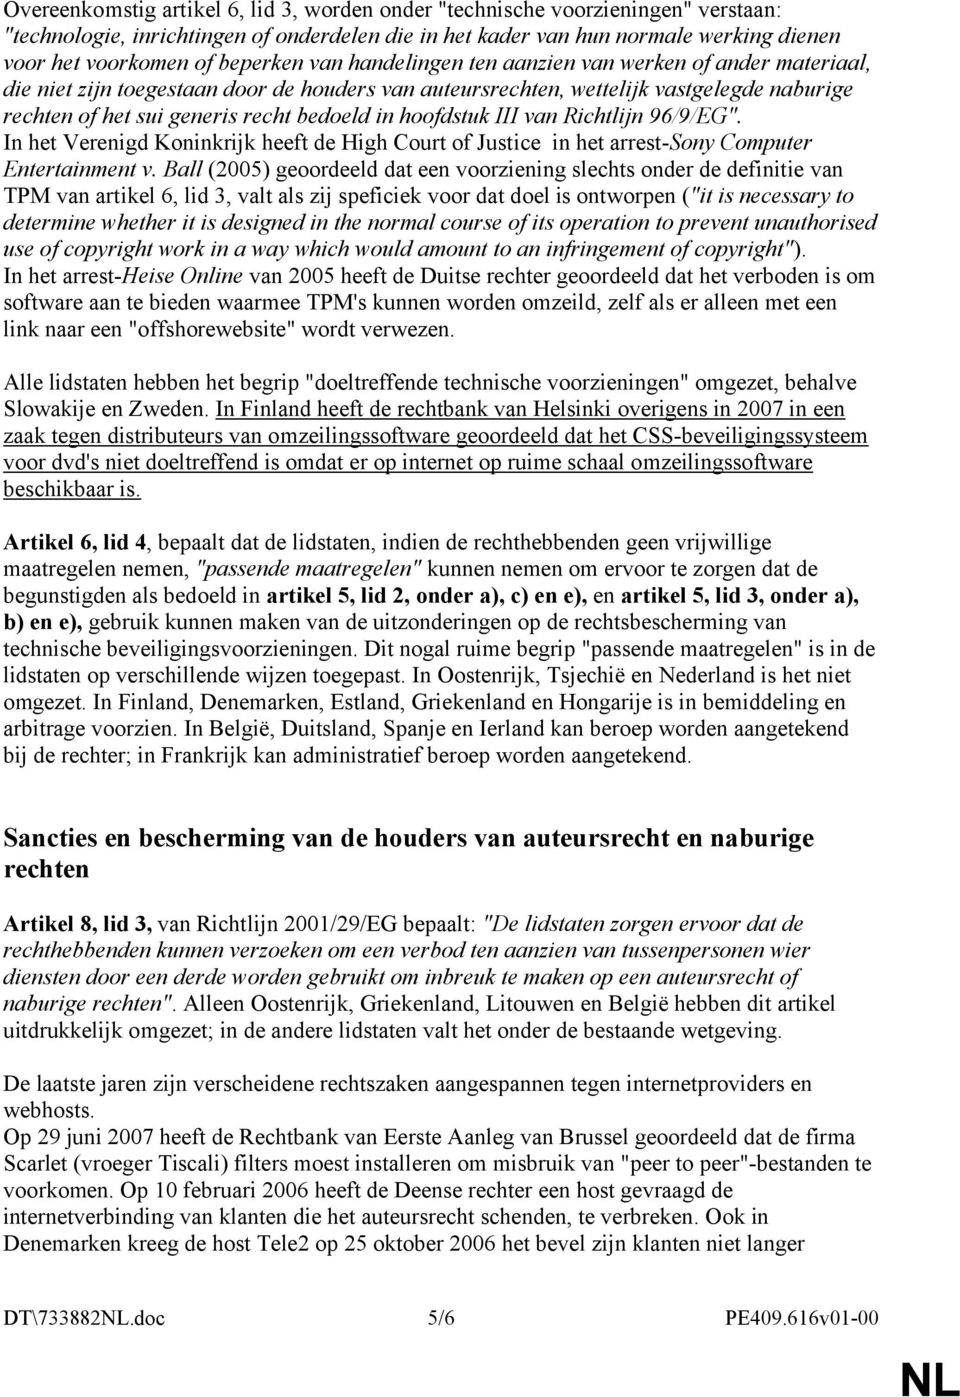 "bedoeld in hoofdstuk III van Richtlijn 96/9/EG"". In het Verenigd Koninkrijk heeft de High Court of Justice in het arrest-sony Computer Entertainment v."